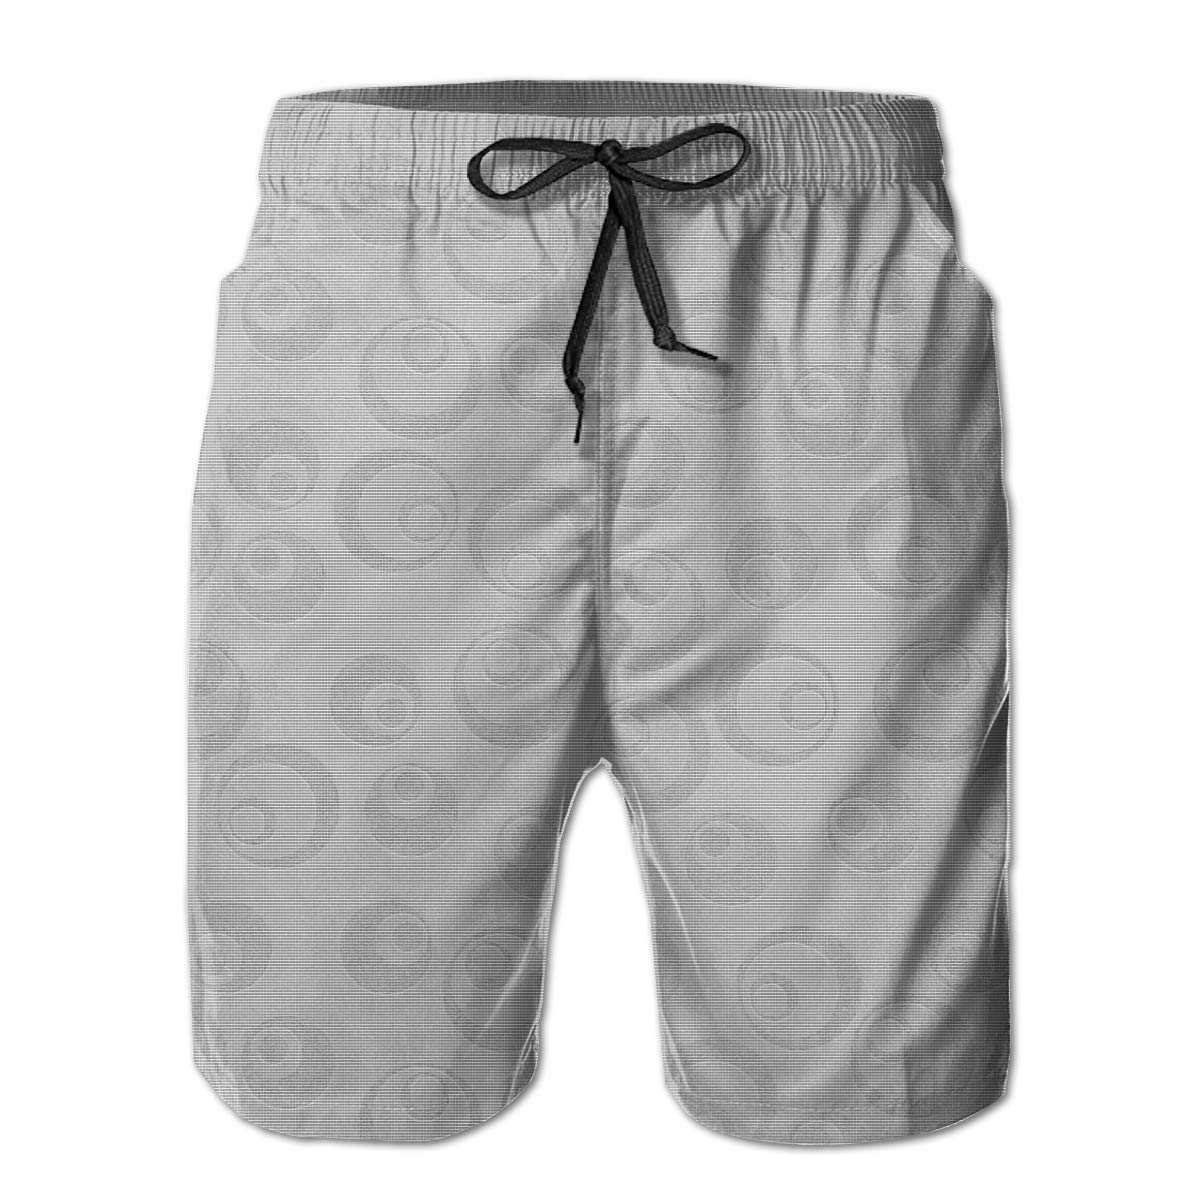 Rigg-pants Mens Soft Hawaii Surfing Mountaineering Cool Beach Shorts Swim Trunks Board Shorts